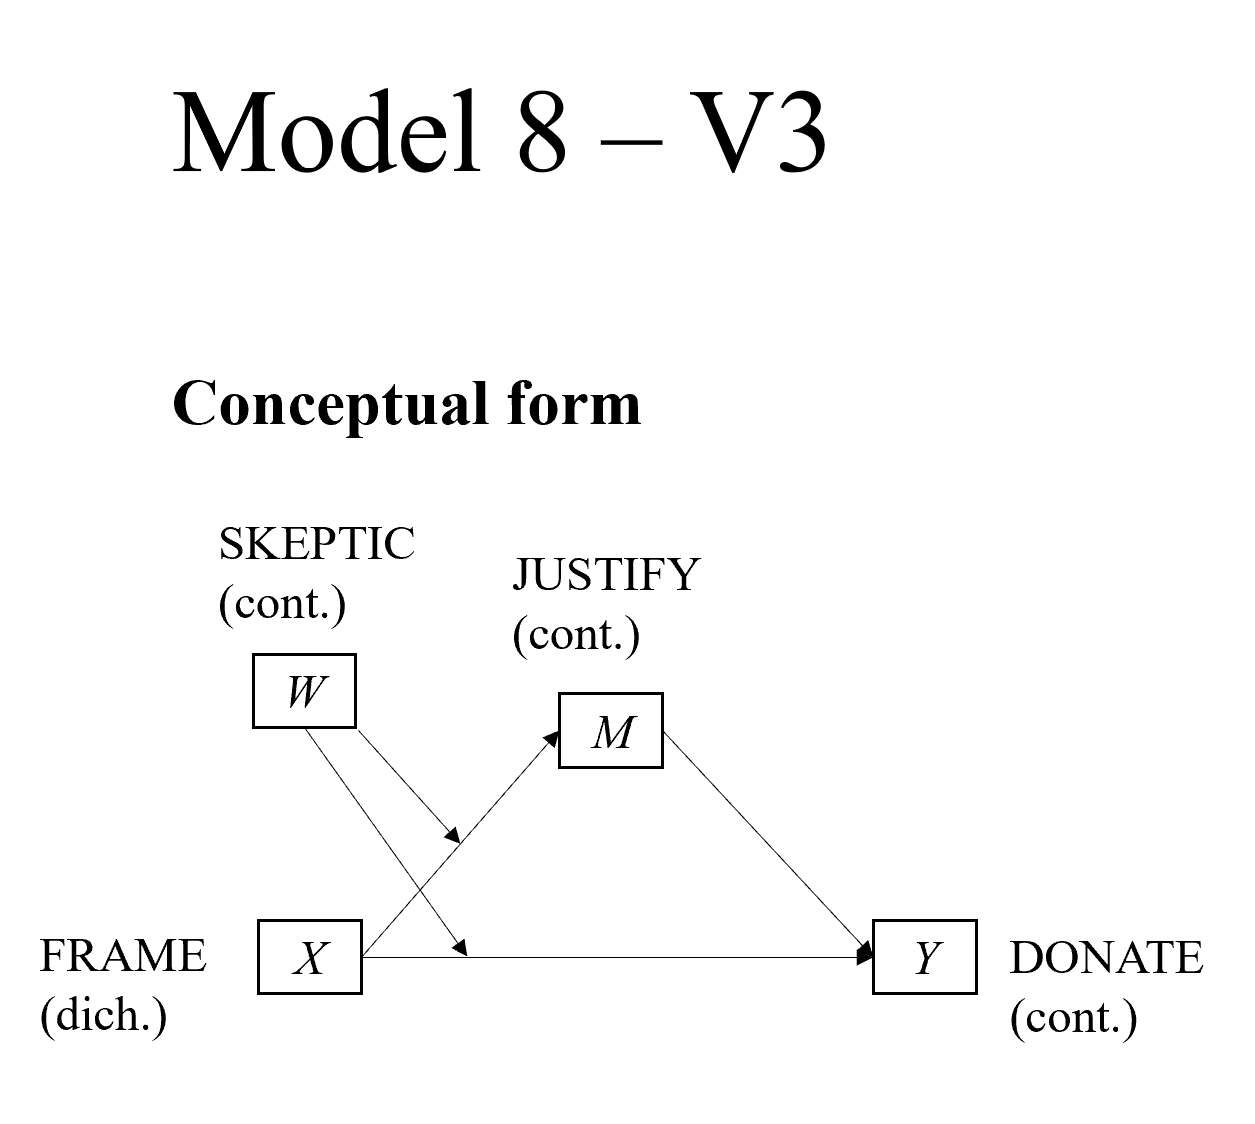 PRODUCT V3 Model 8 Graphing moderated mediation - PROCESS V3